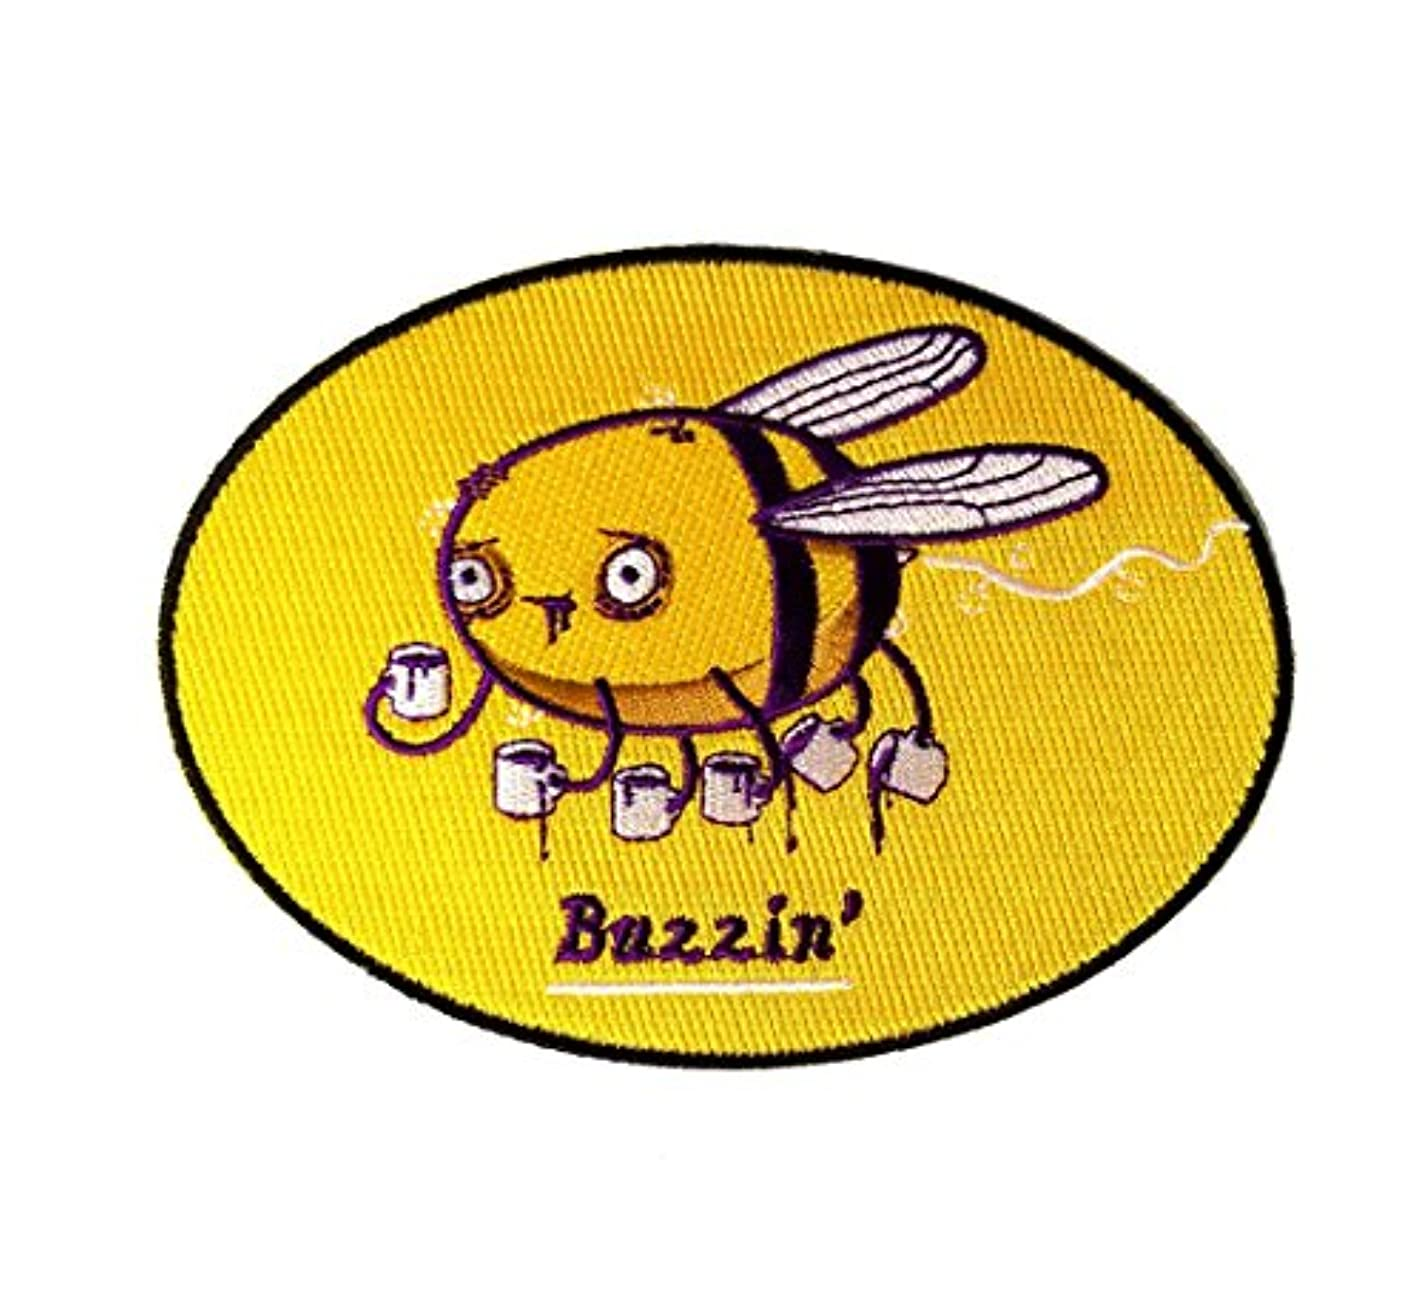 Buzzin Bumblebee Drinking Coffee Brew - Iron on Embroidered Patch Applique